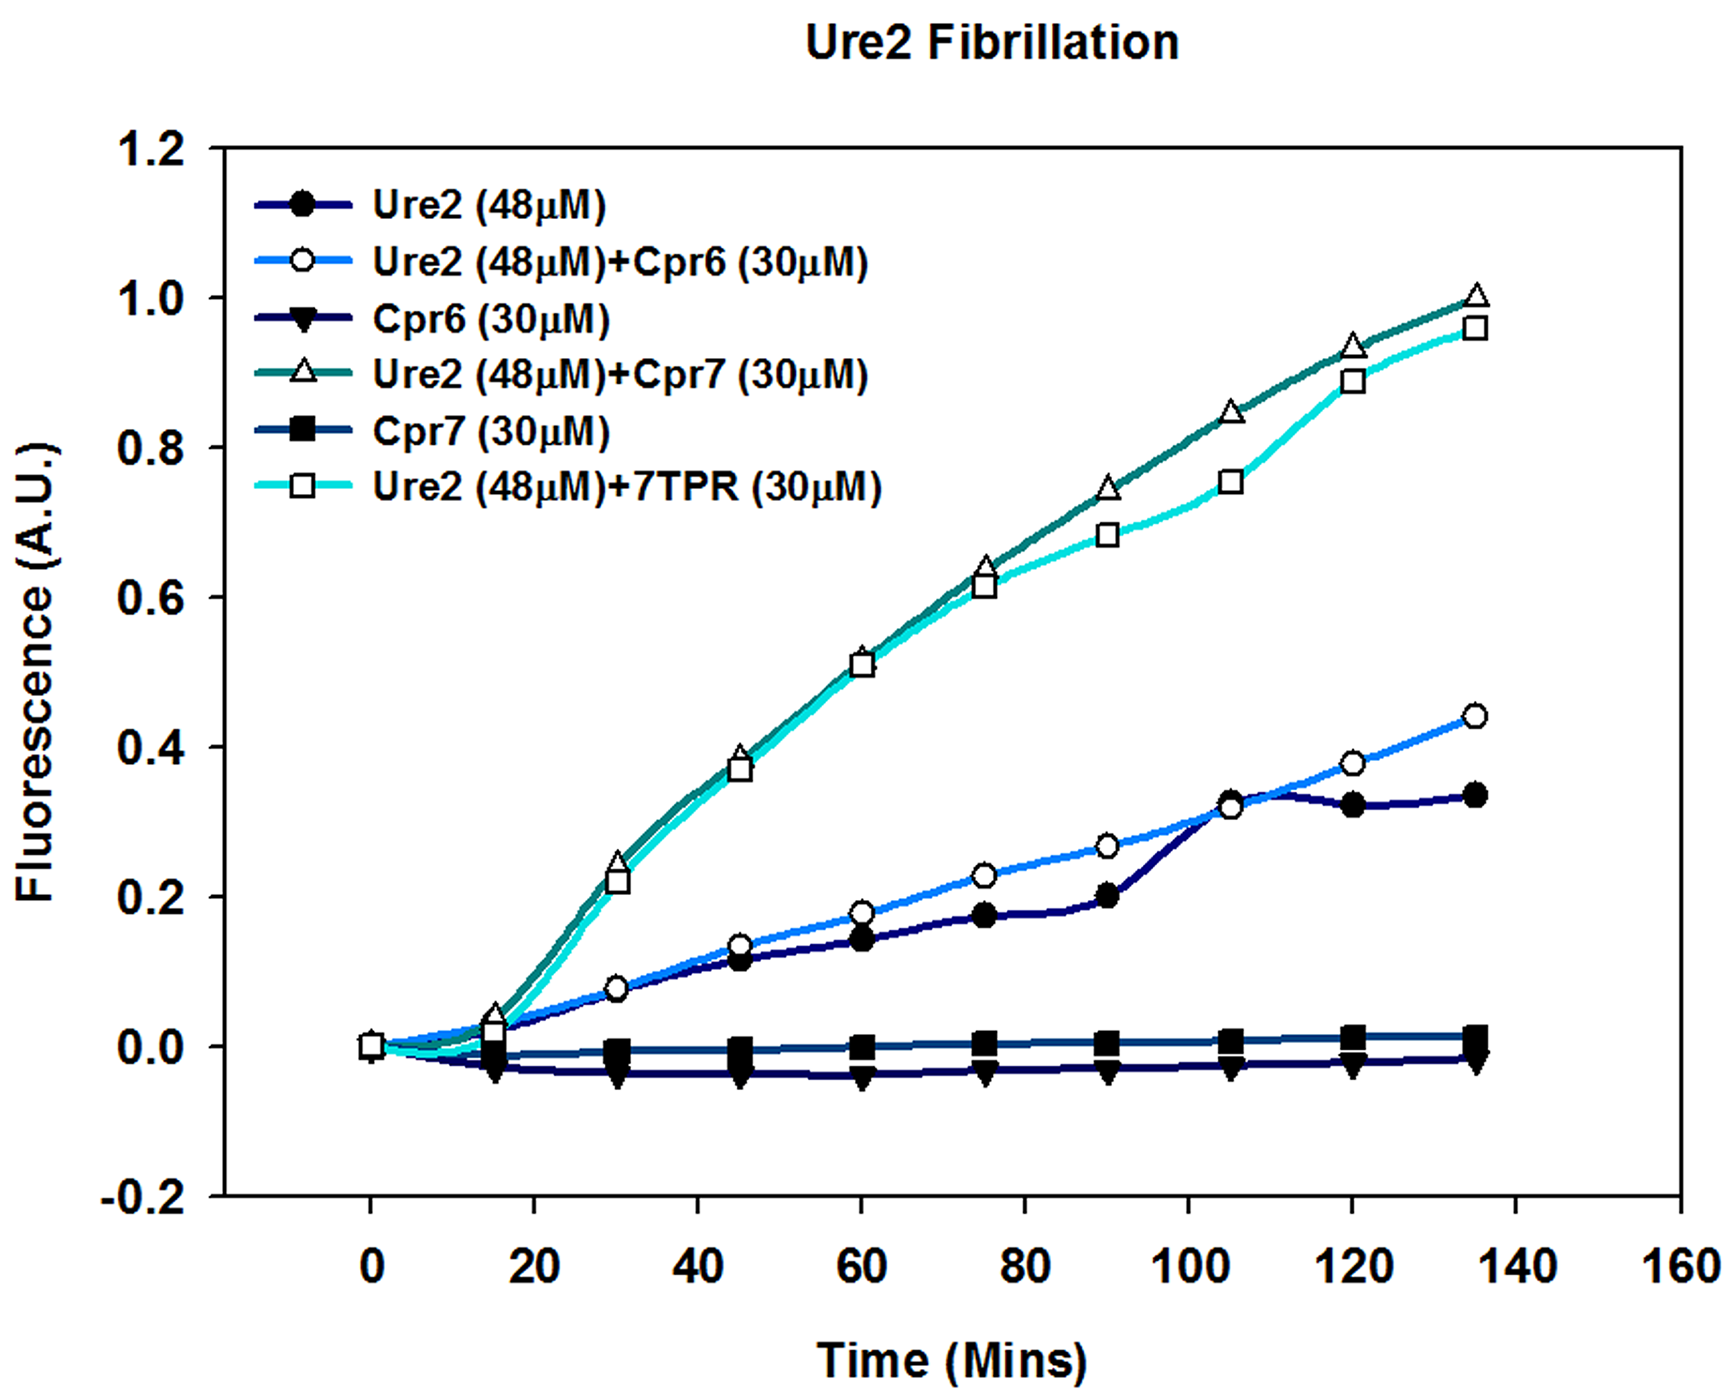 Cpr7 enhances in vitro fibrillization of Ure2.